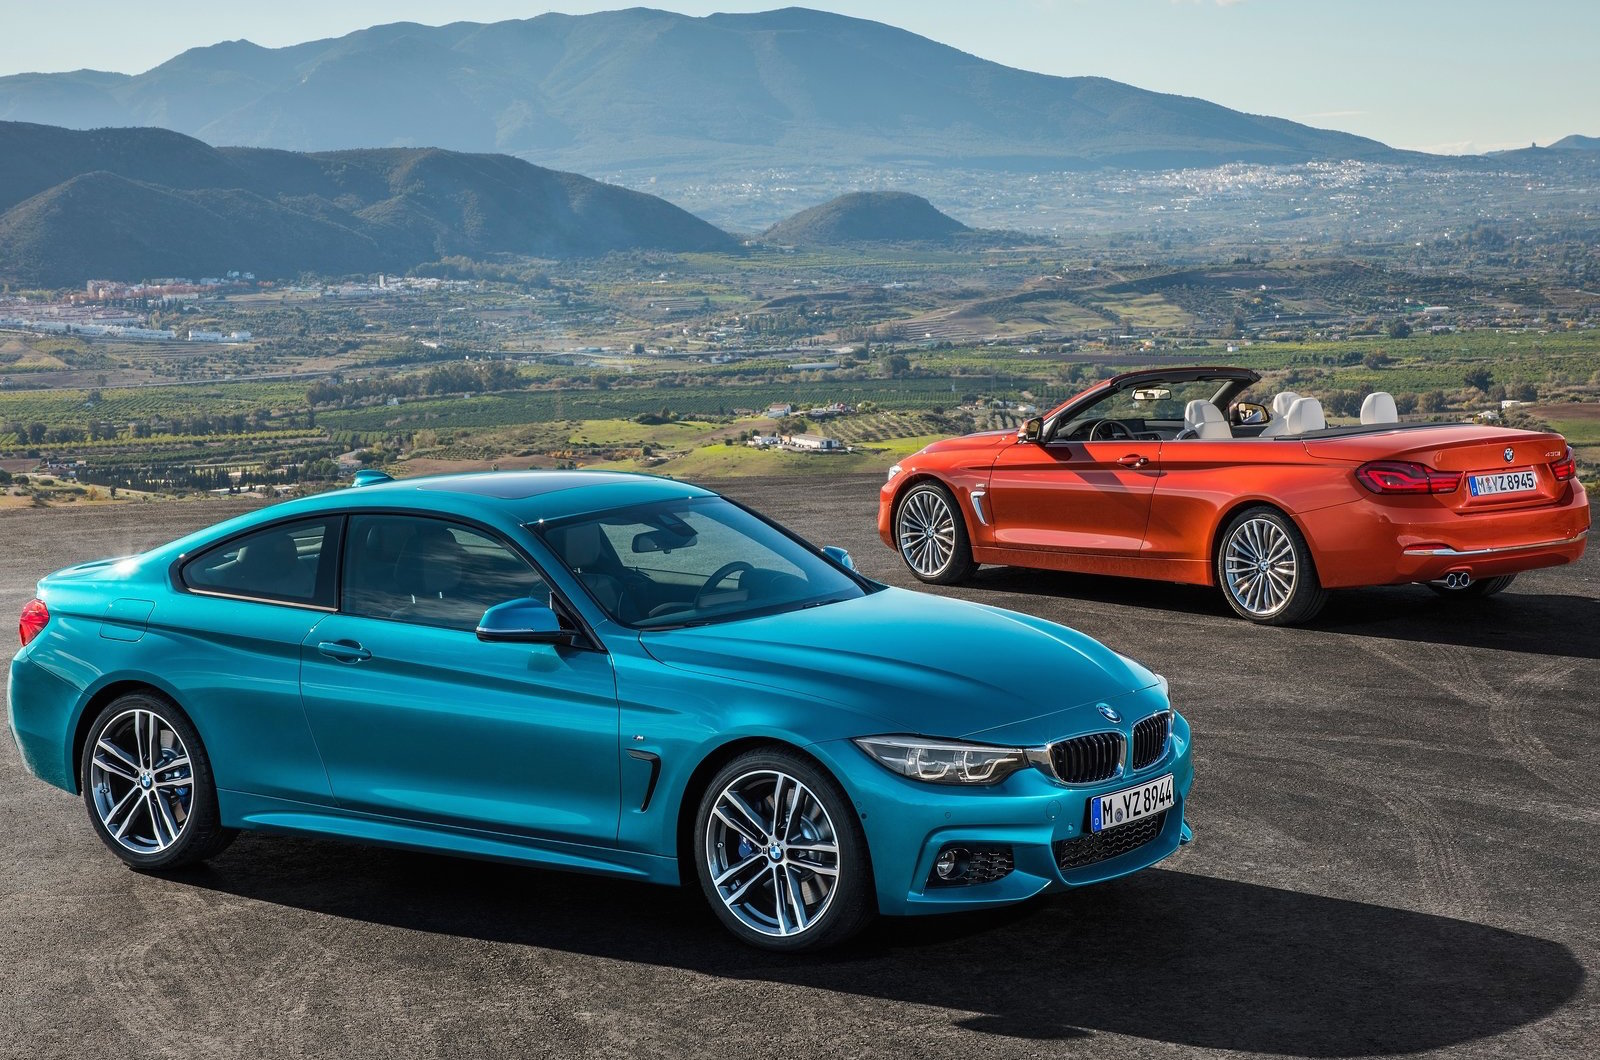 2017 bmw 4 series lci on sale in australia from 69 900. Black Bedroom Furniture Sets. Home Design Ideas